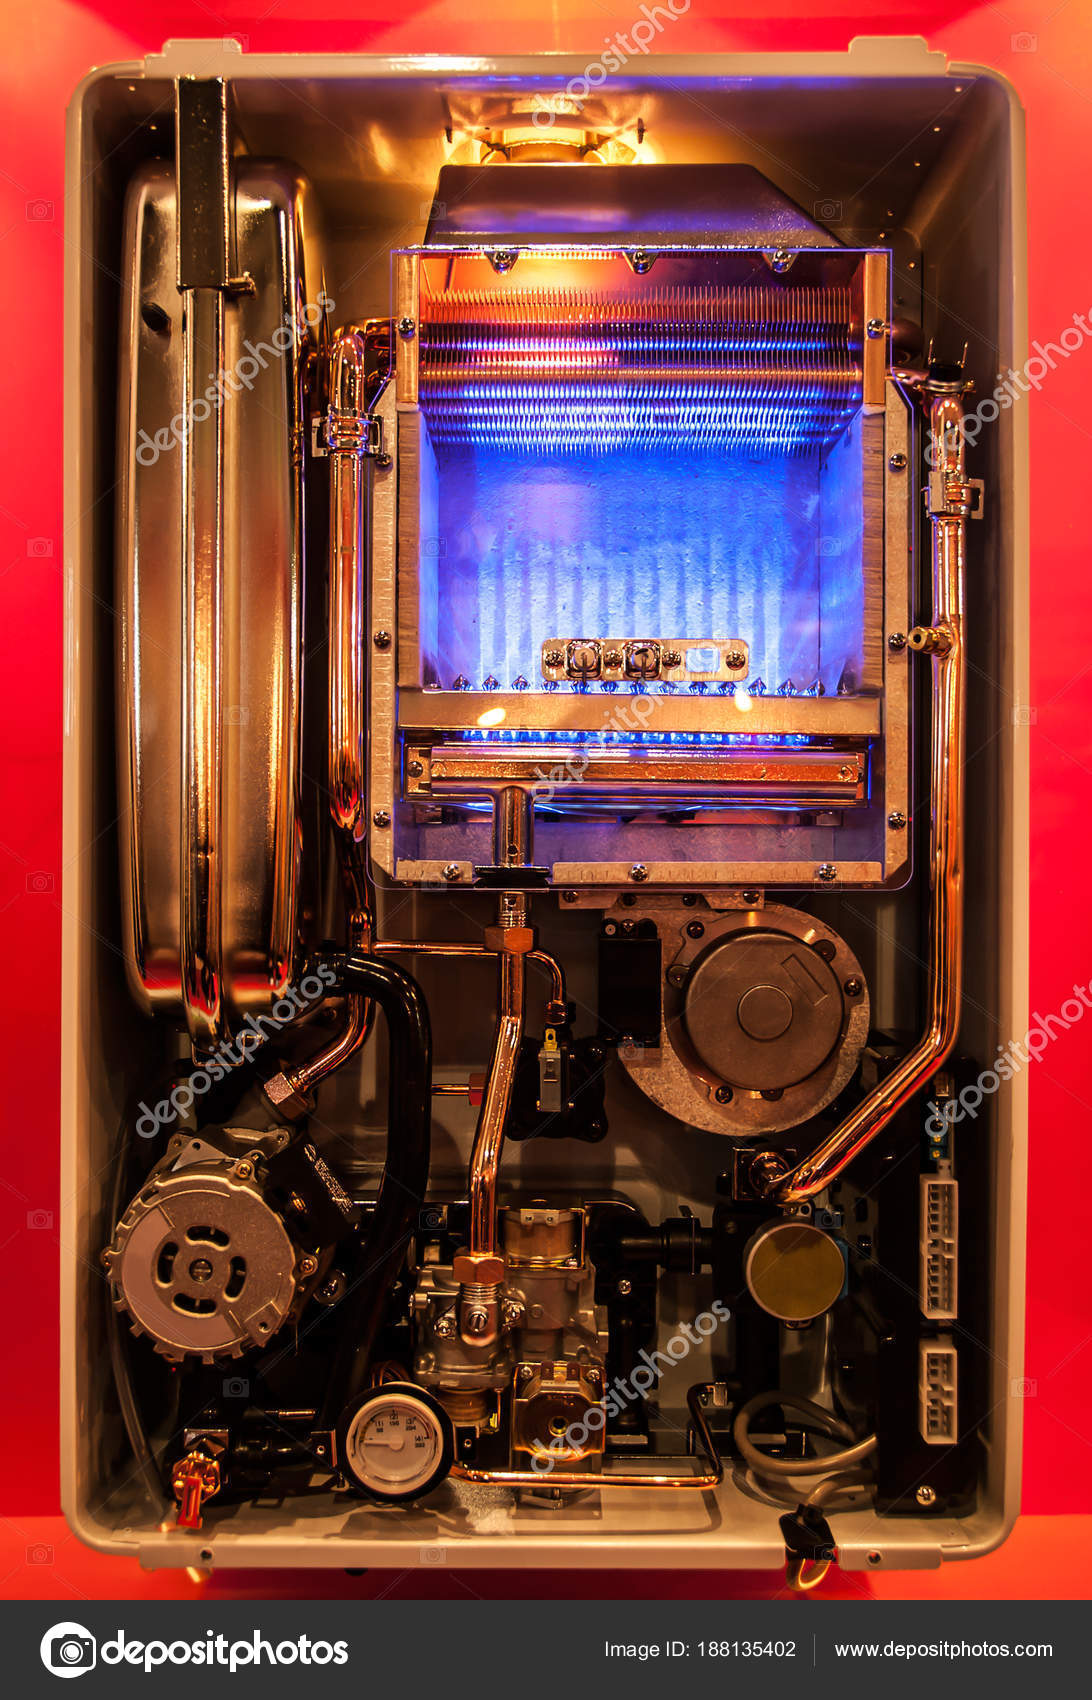 Closein Boiler A Close Up View Inside Of A Gas Boiler Stock Photo Sashikoa